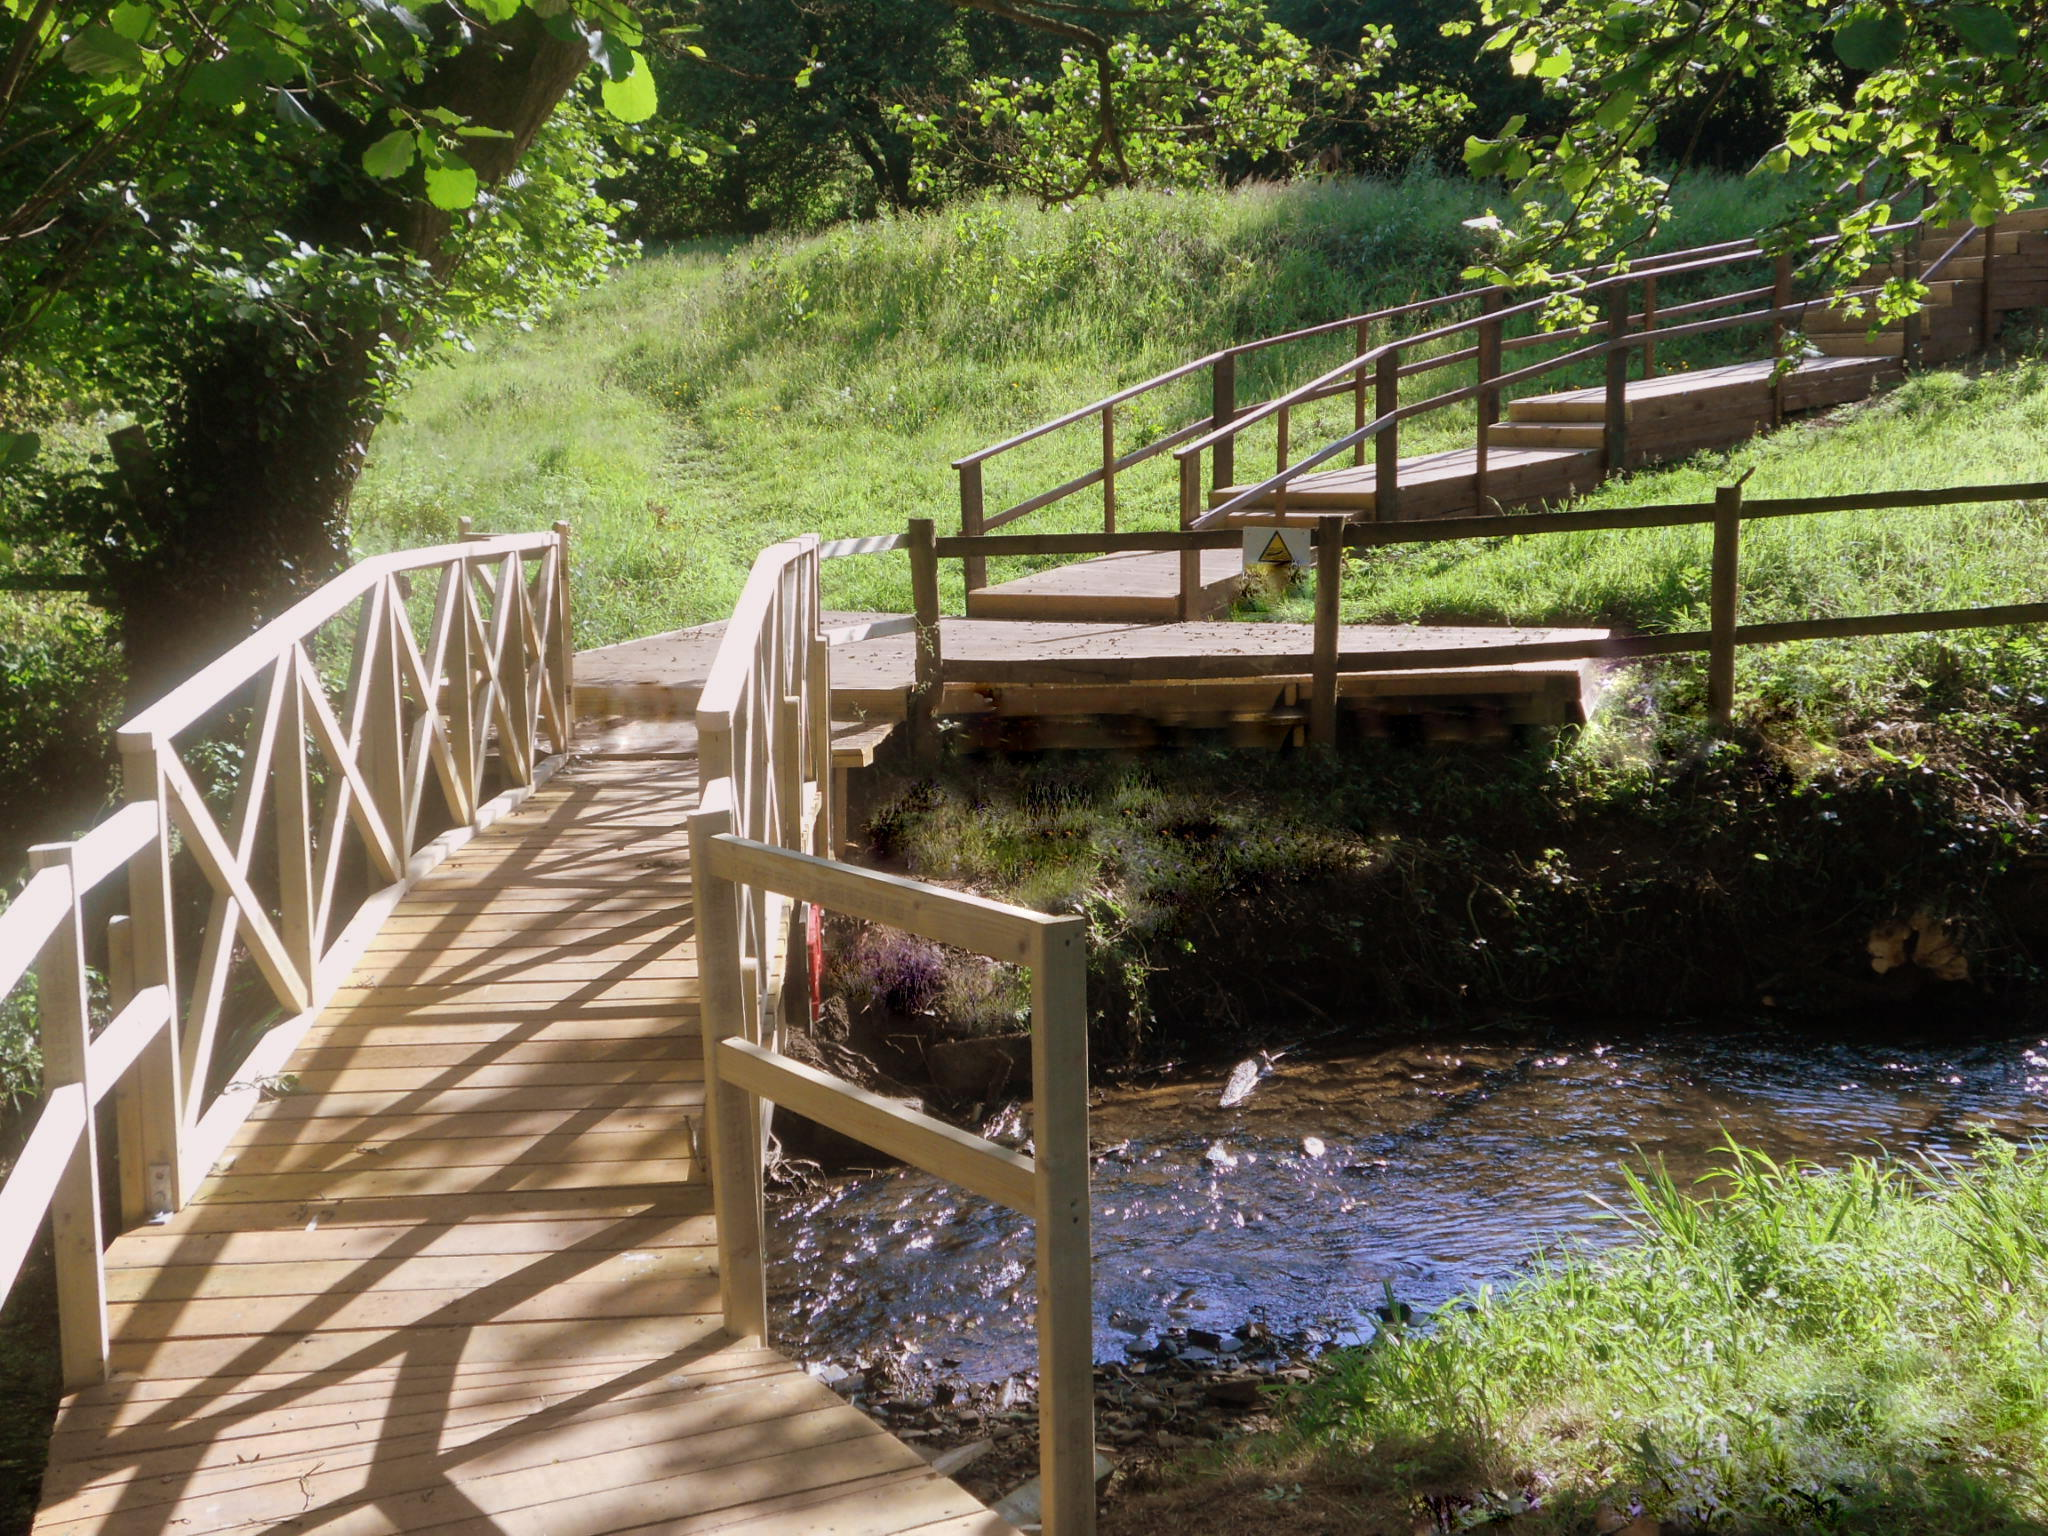 Bridge over the Brook